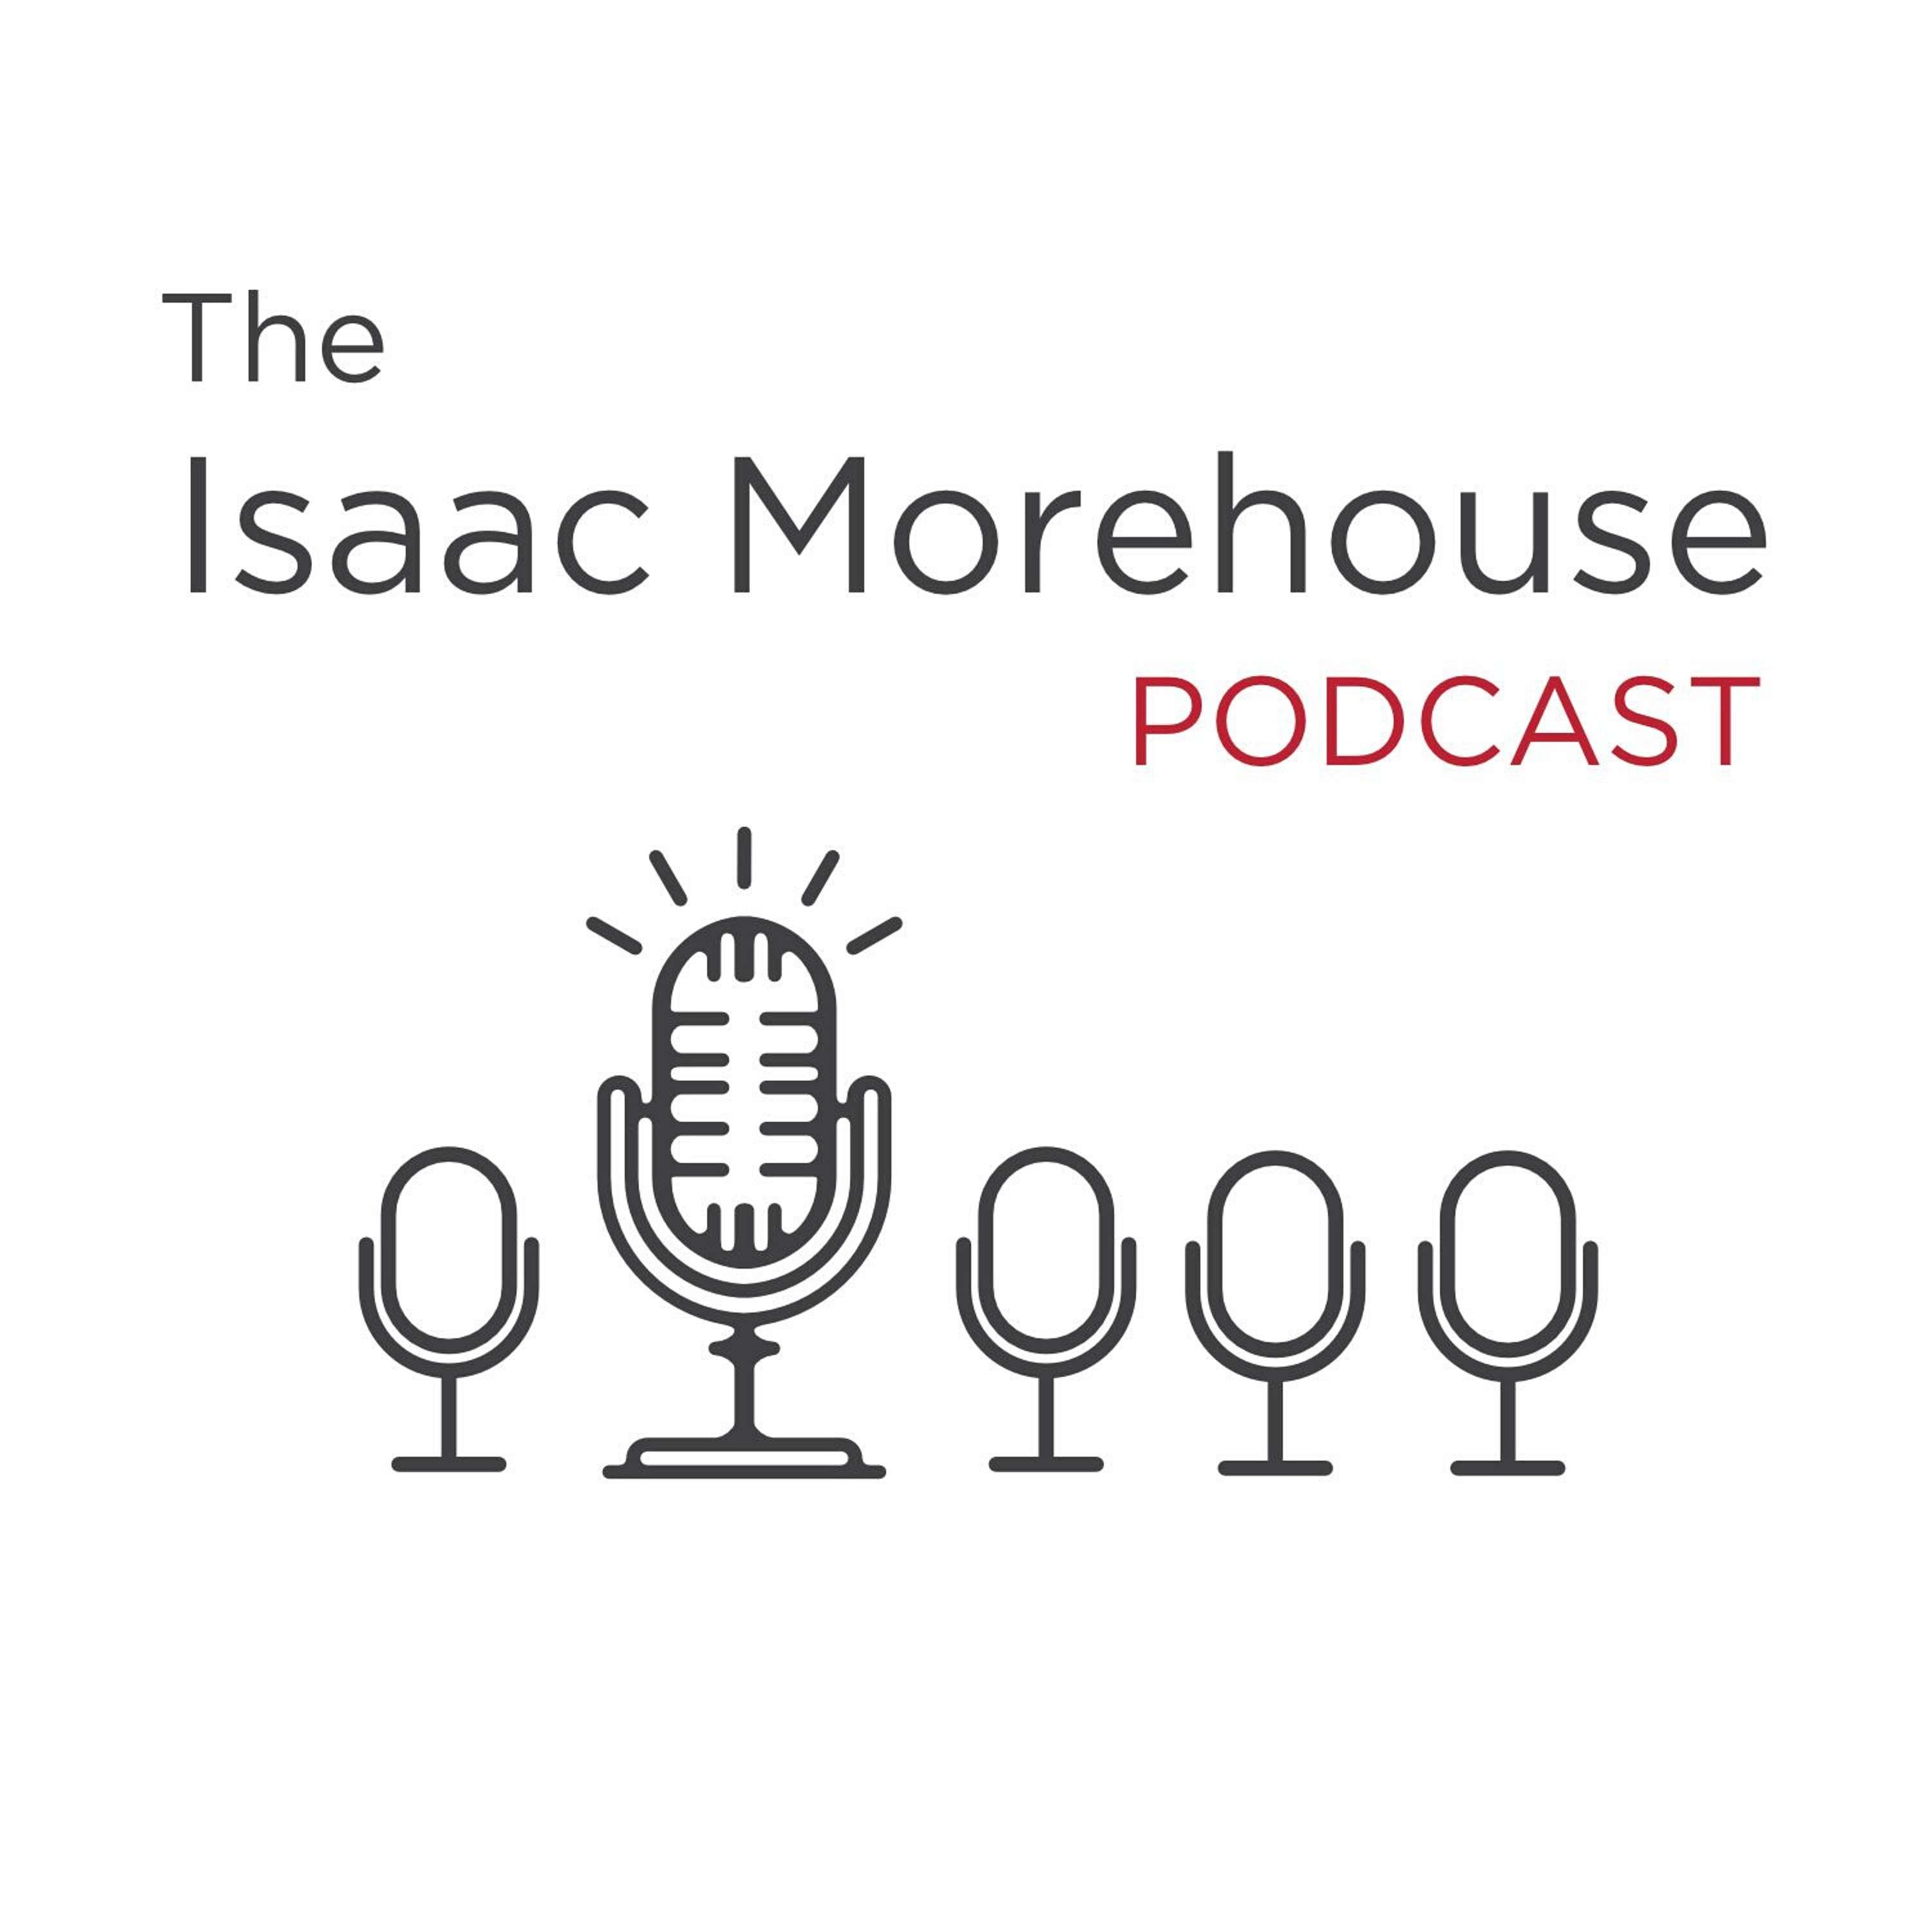 Isaac Morehouse - Penelope Trunk - CEO of Quistic